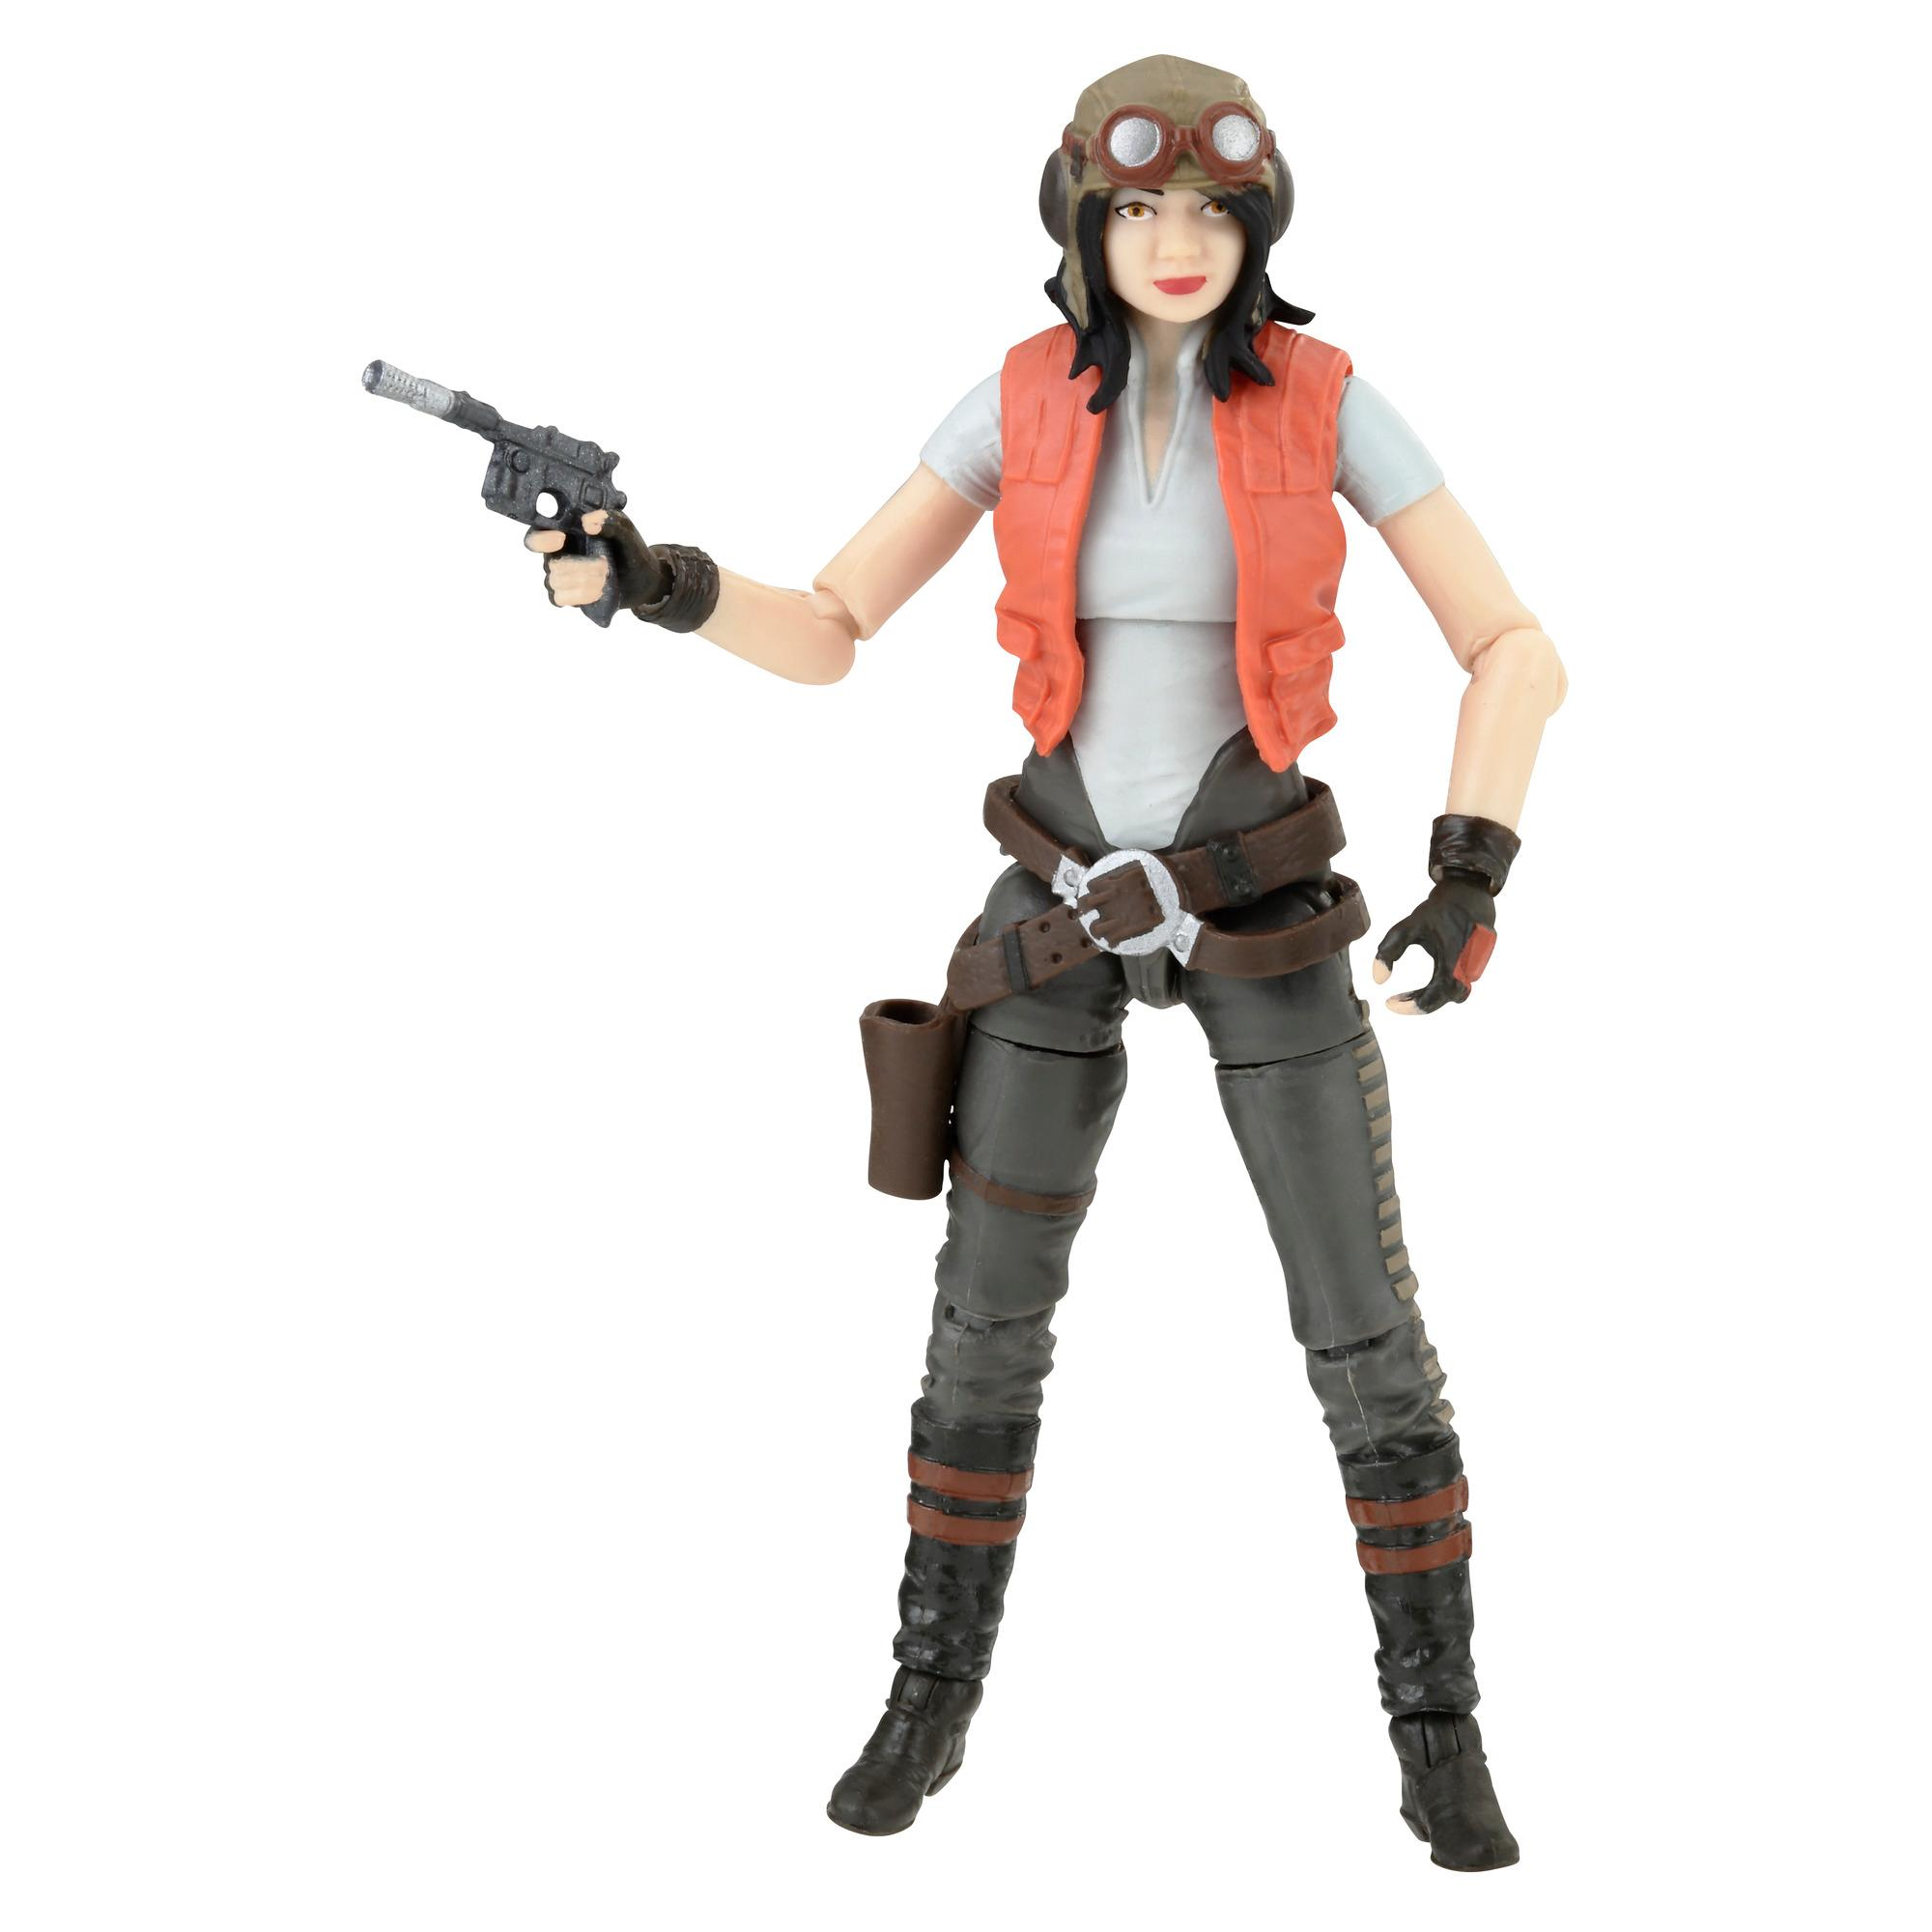 Star Wars The Vintage Collection Doctor Aphra 3.75-inch Figure